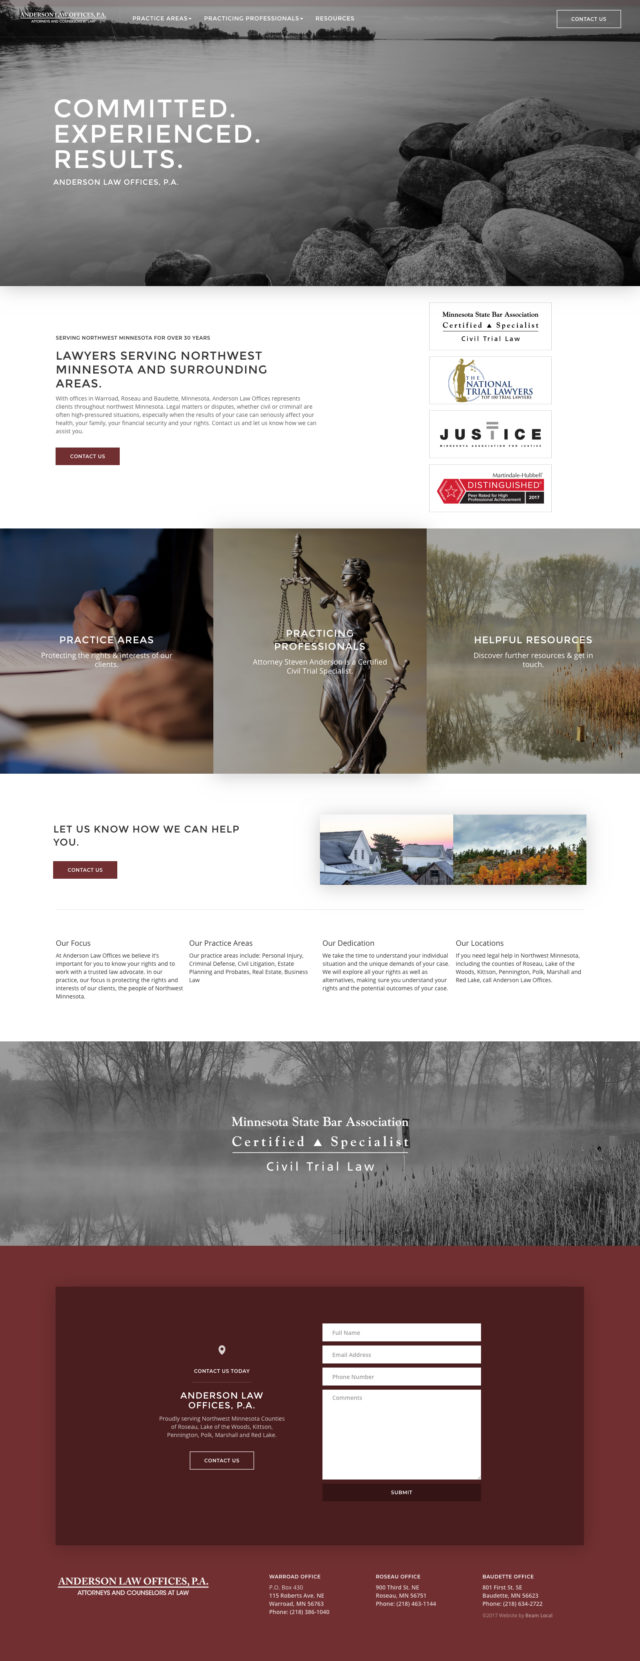 Are These The Best Lawyer Website Designs For 2018 Beam Local